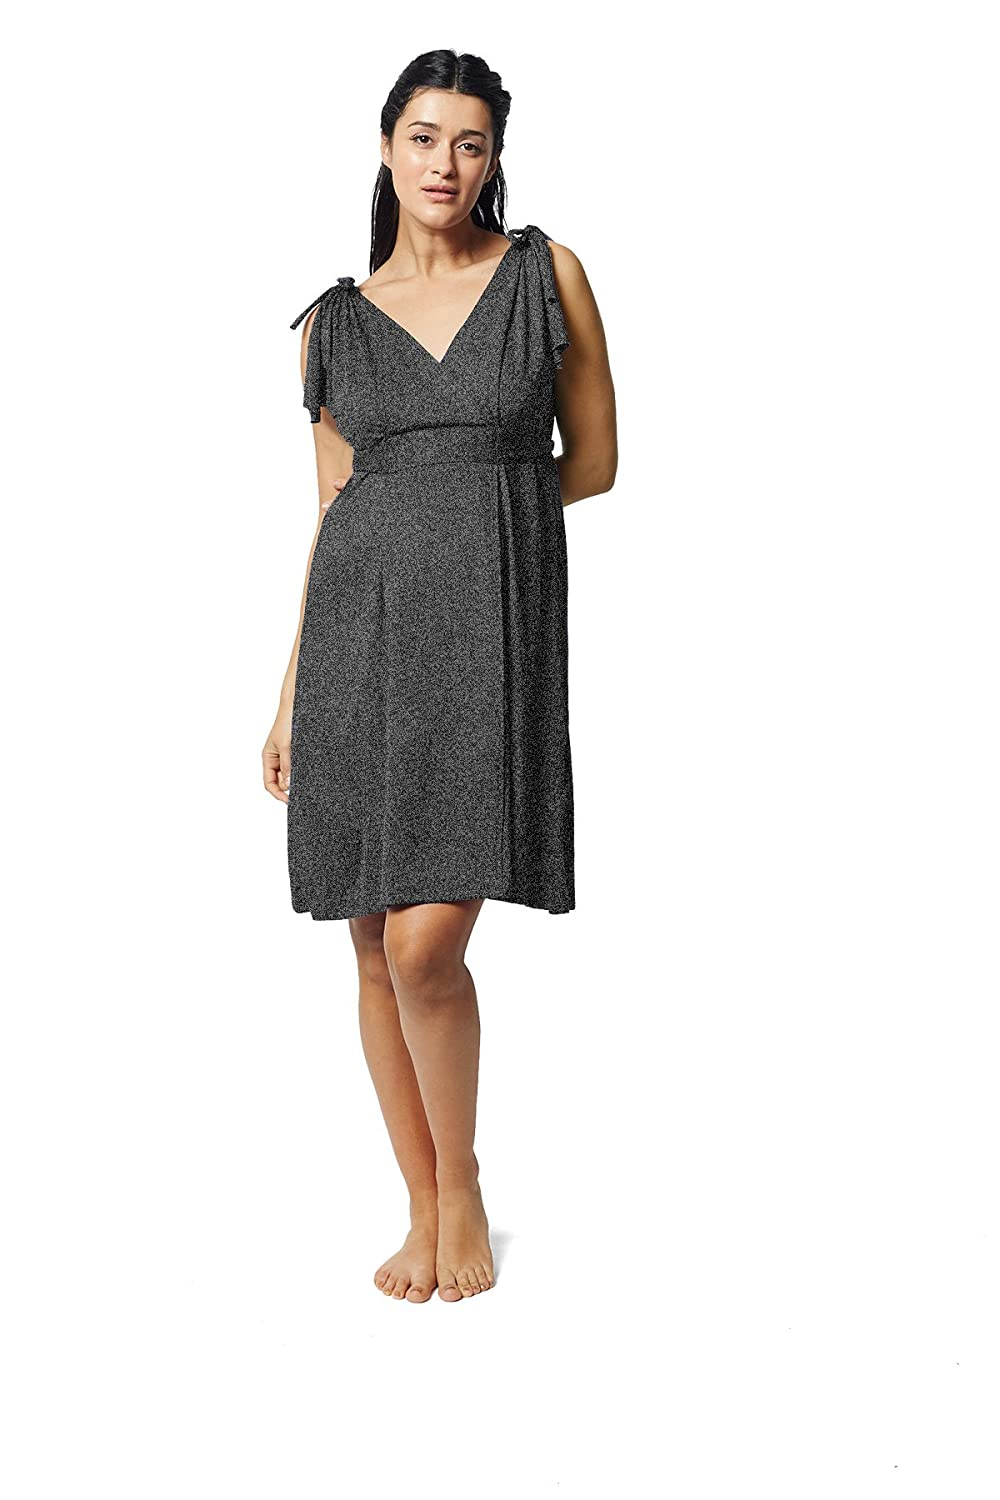 e570119fb2c27 Amazon.com: Pretty Pushers Butterfly Sleeve Maternity/Labor/Nursing Dress  One Size (2-16 pre-Pregnancy) Charcoal Grey: Clothing